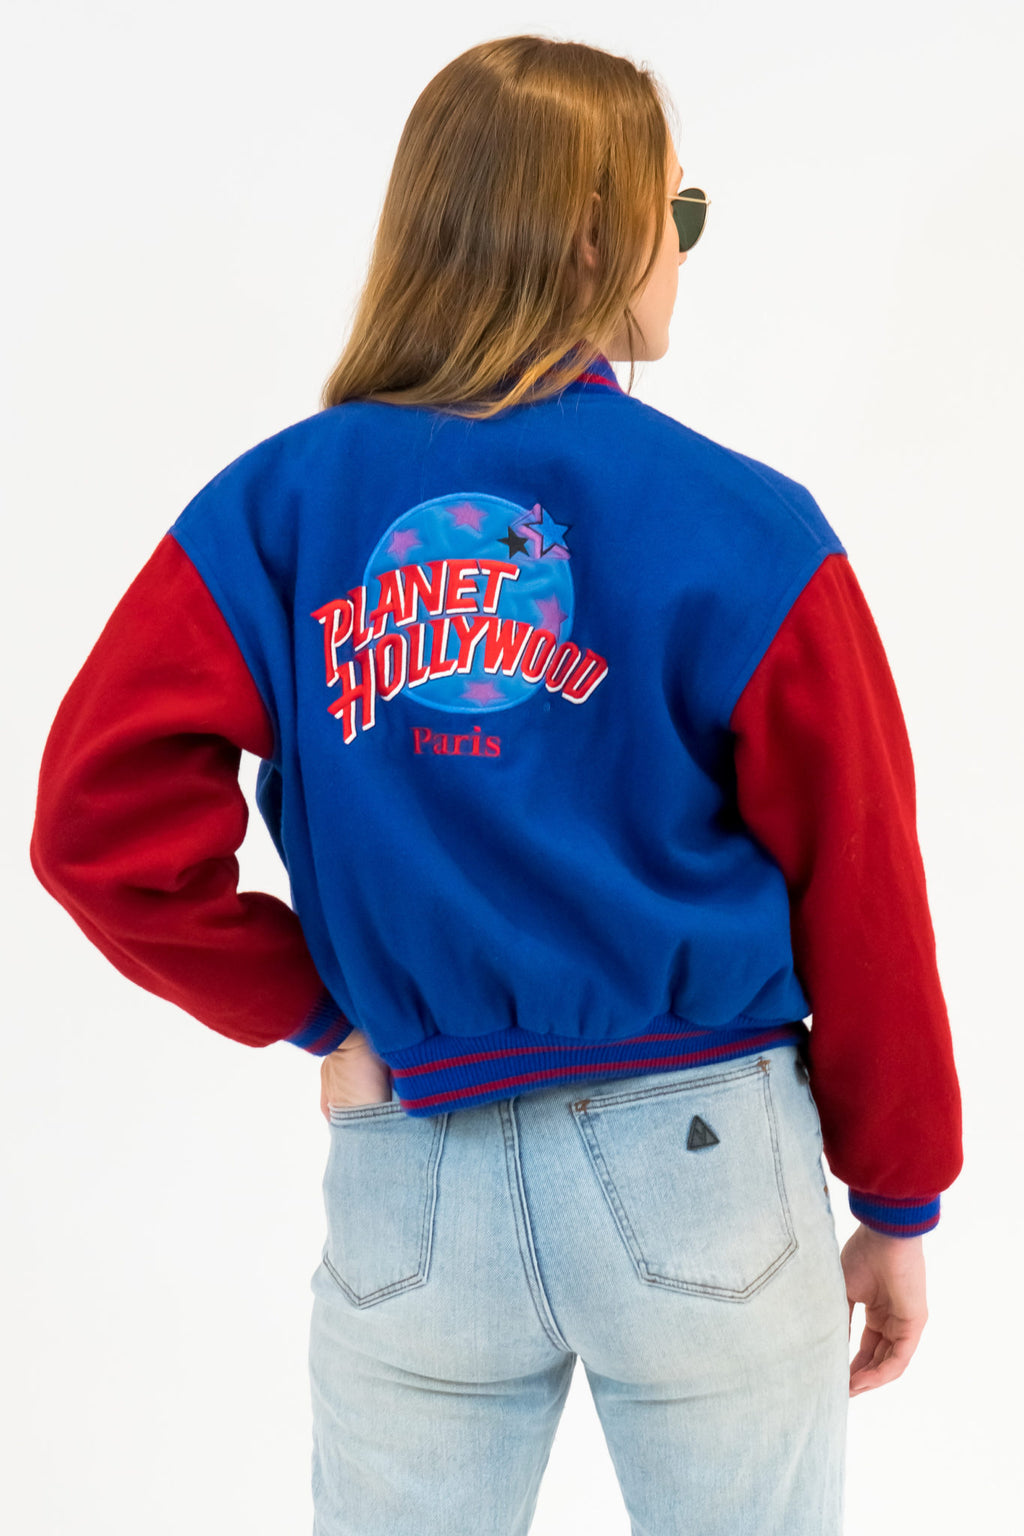 Vintage Planet Hollywood Paris Jacket